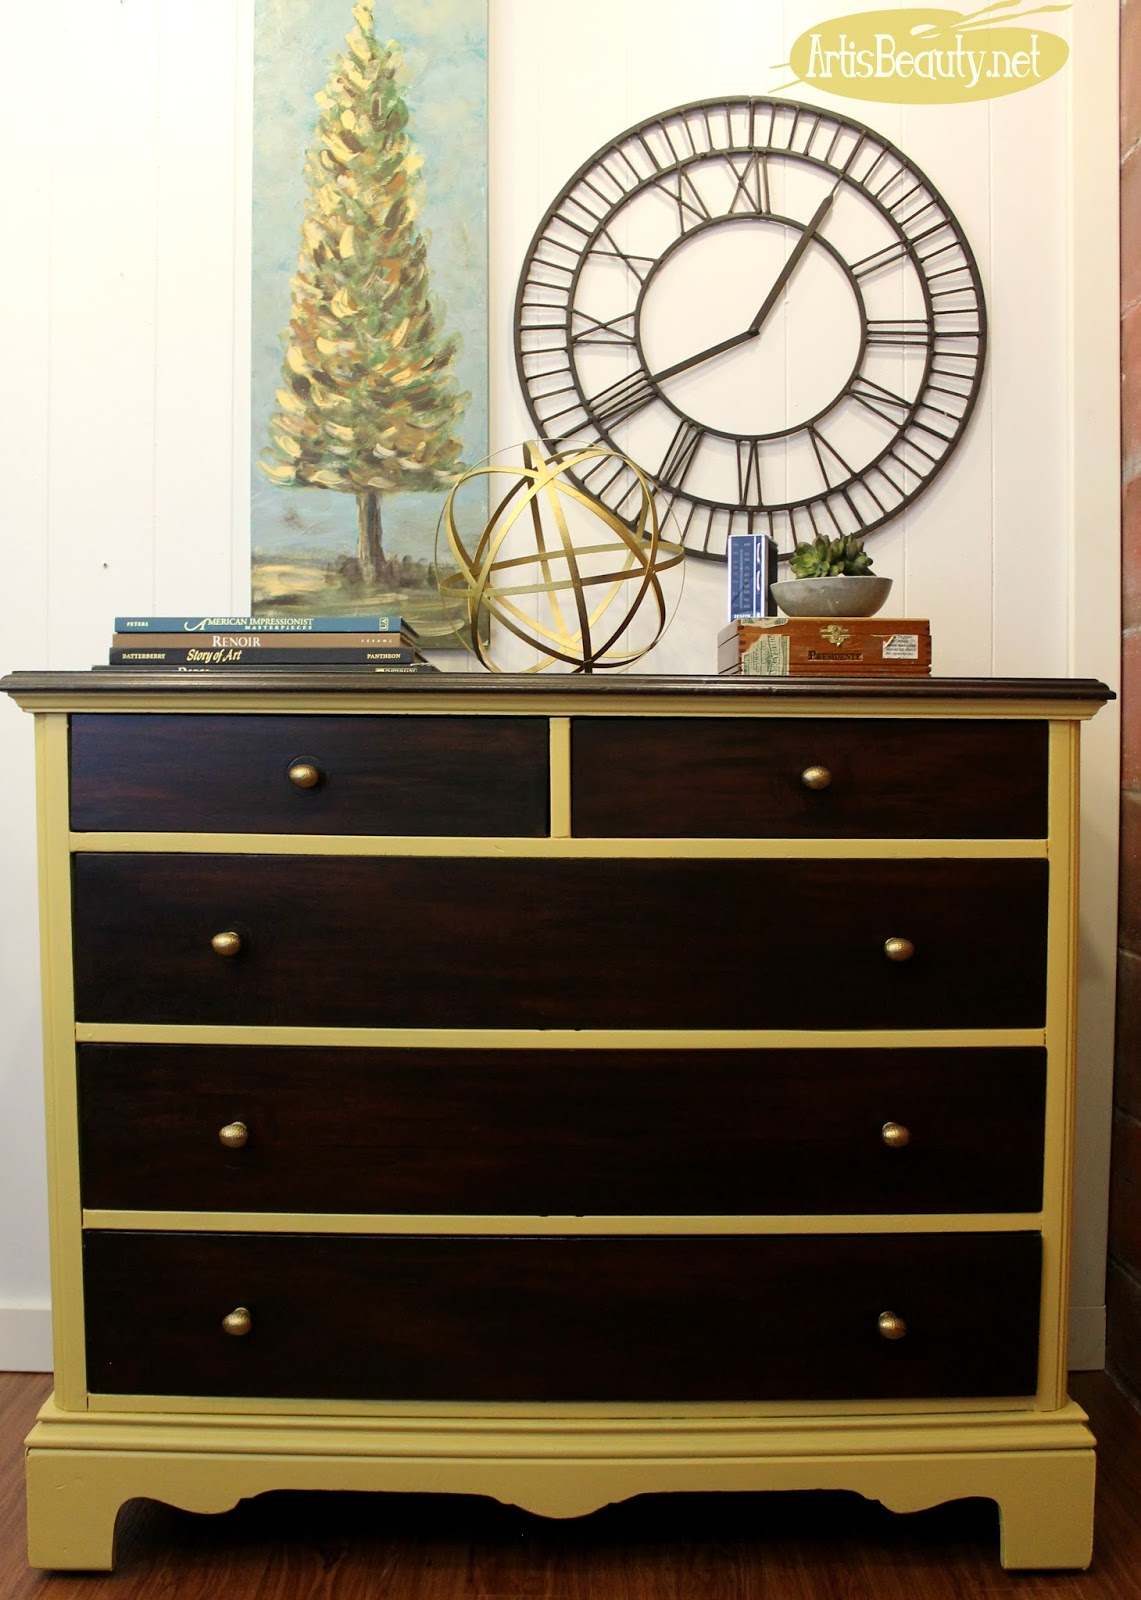 Art Is Beauty Updating A Dresser With General Finishes